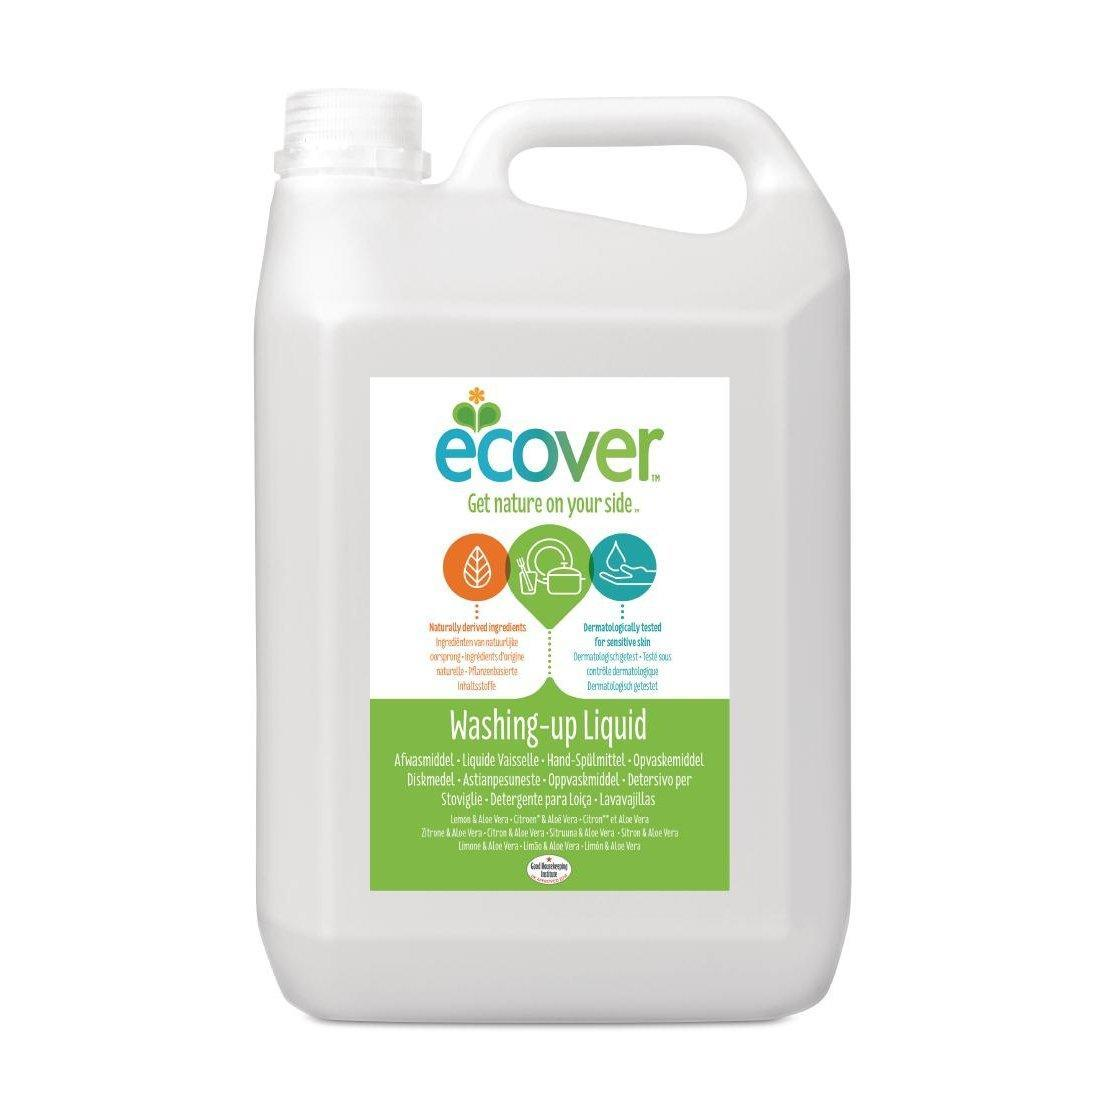 Ecover Lemon and Aloe Vera Washing Up Liquid 5 Litre - Each - GH500